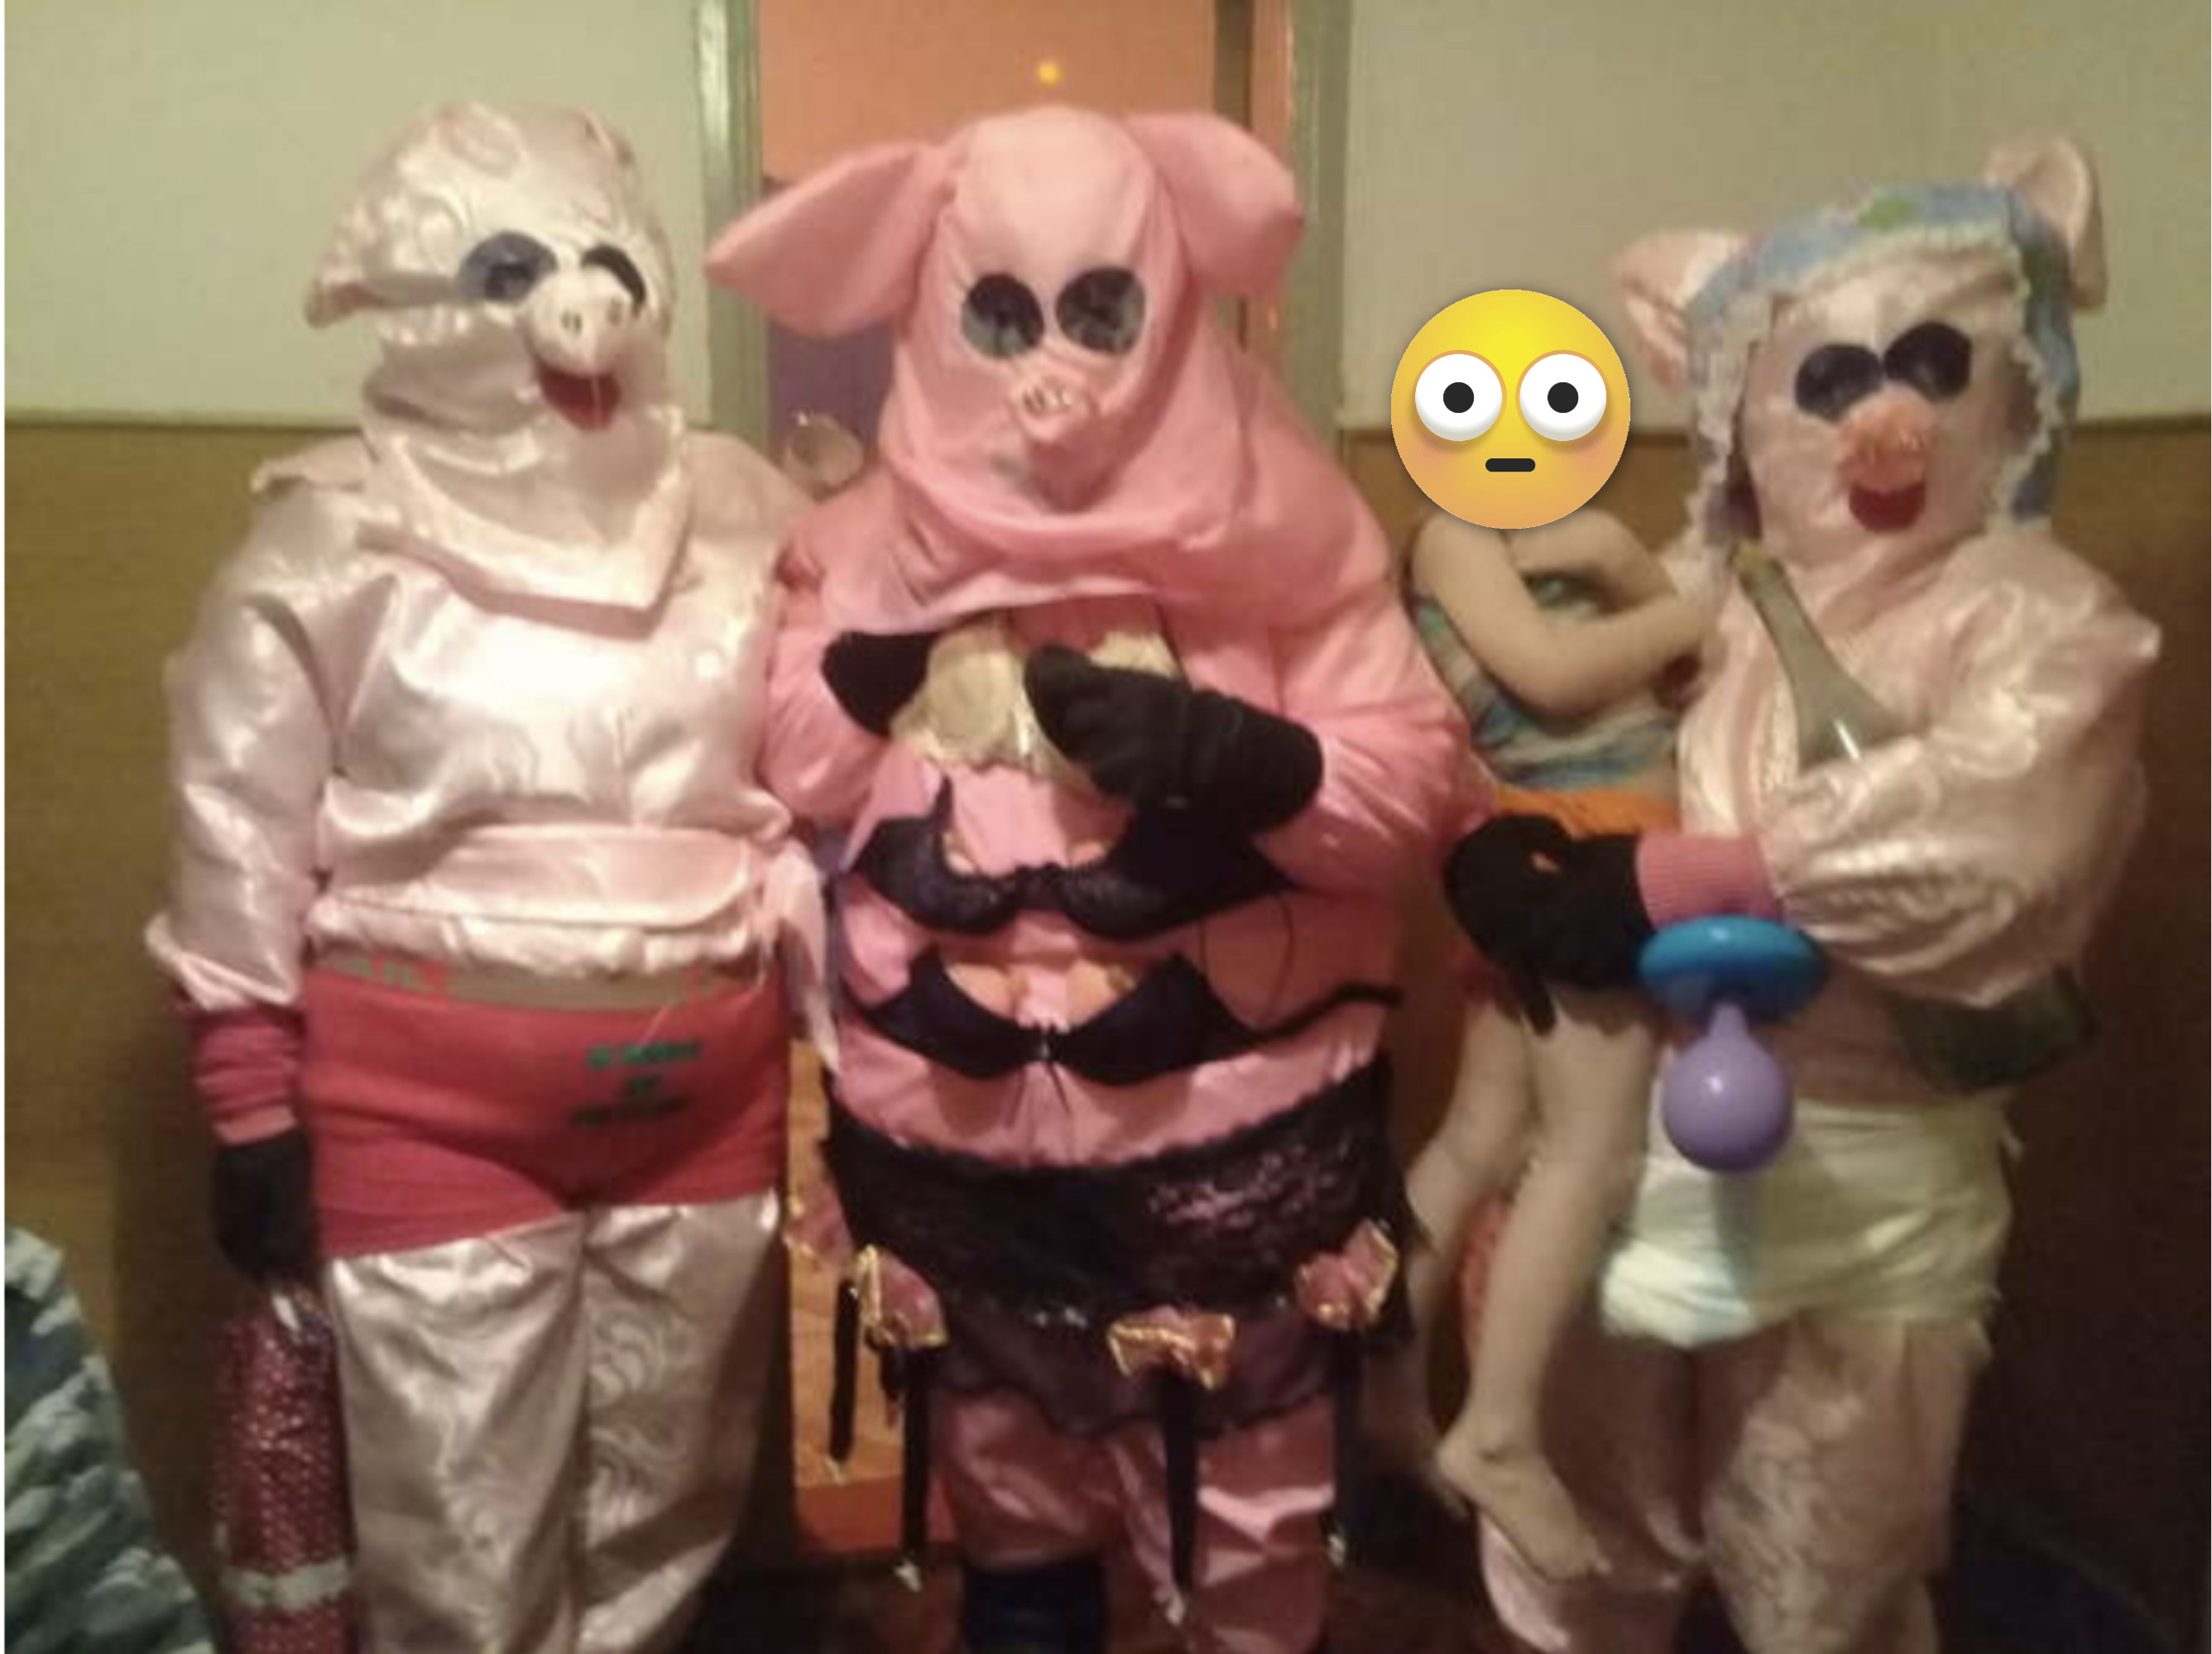 The entertainers are dressed as pigs and it is scary, seriously